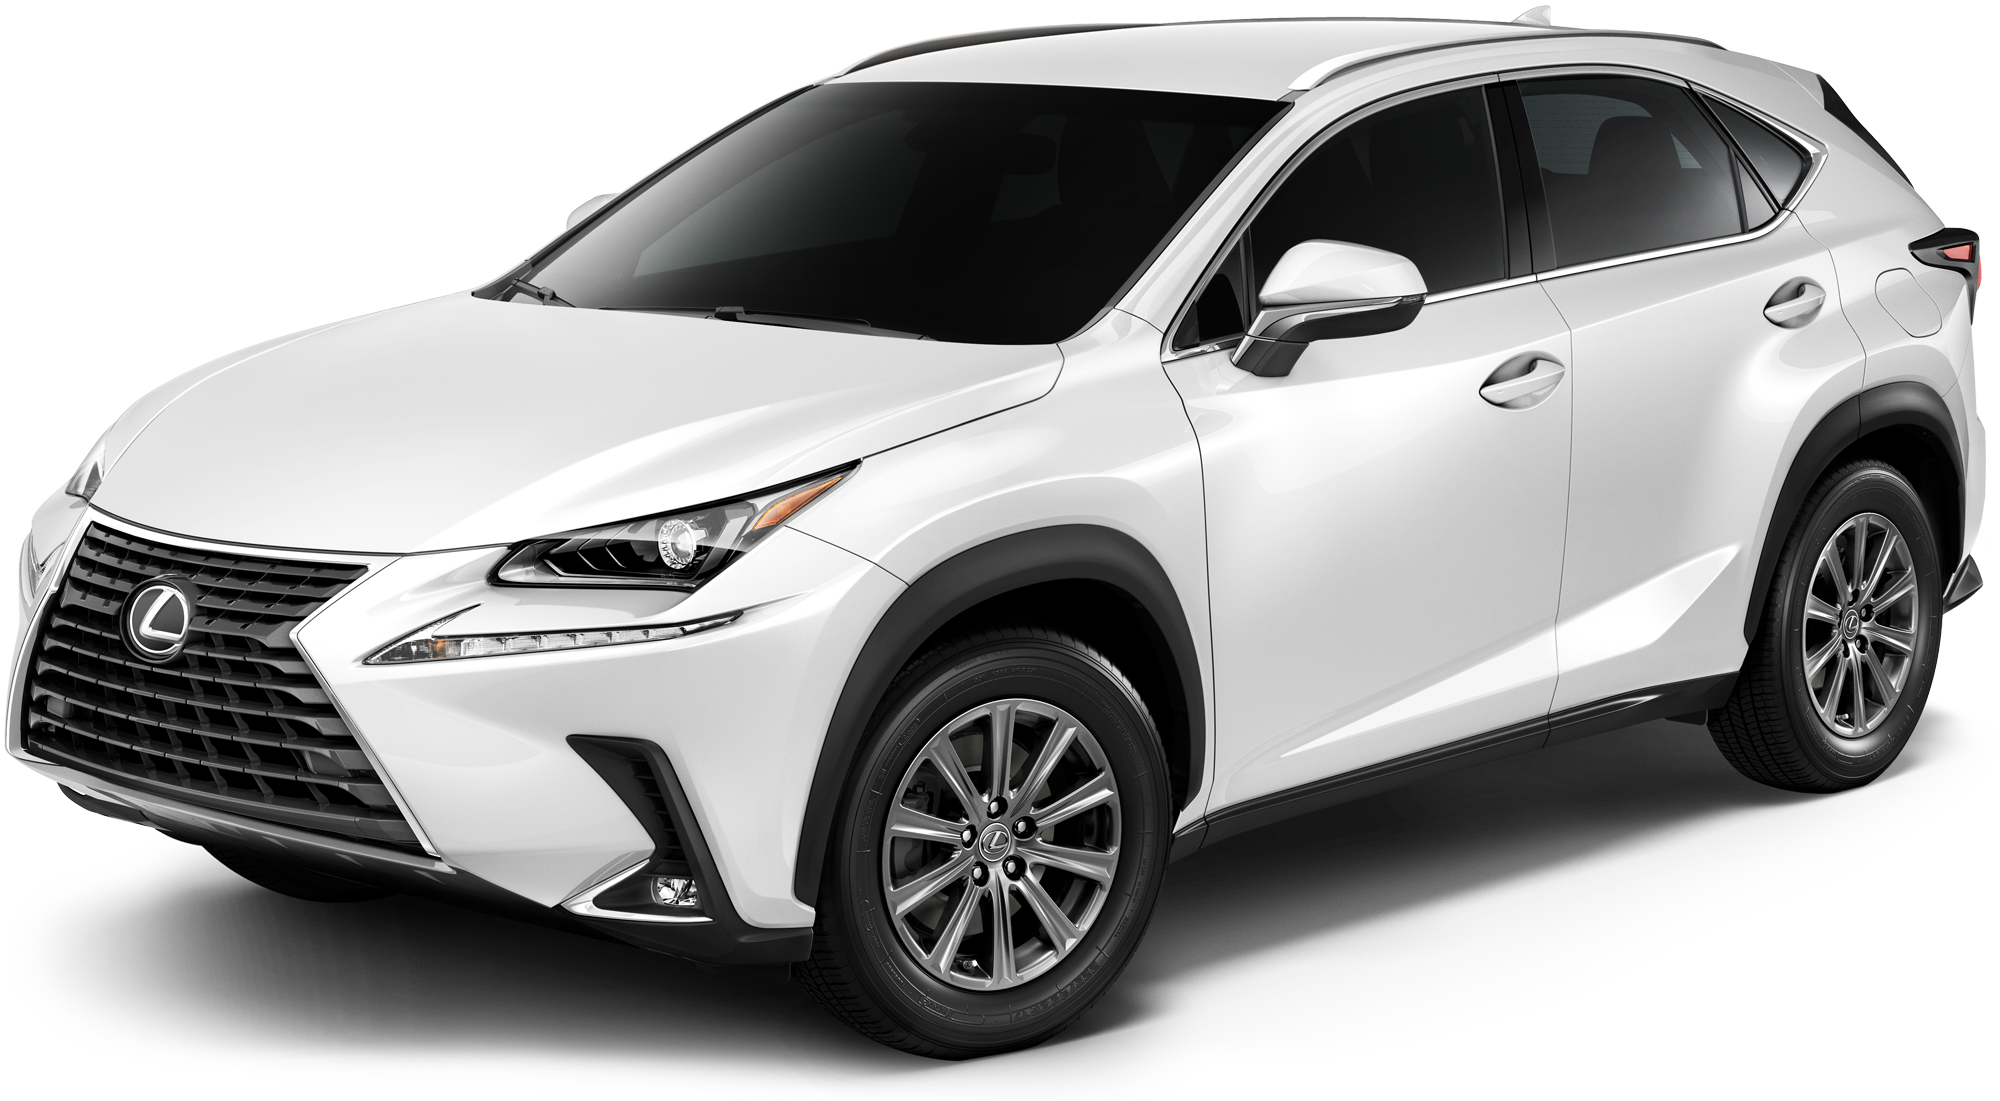 2019 Lexus NX 300 Incentives, Specials & Offers in Plano TX